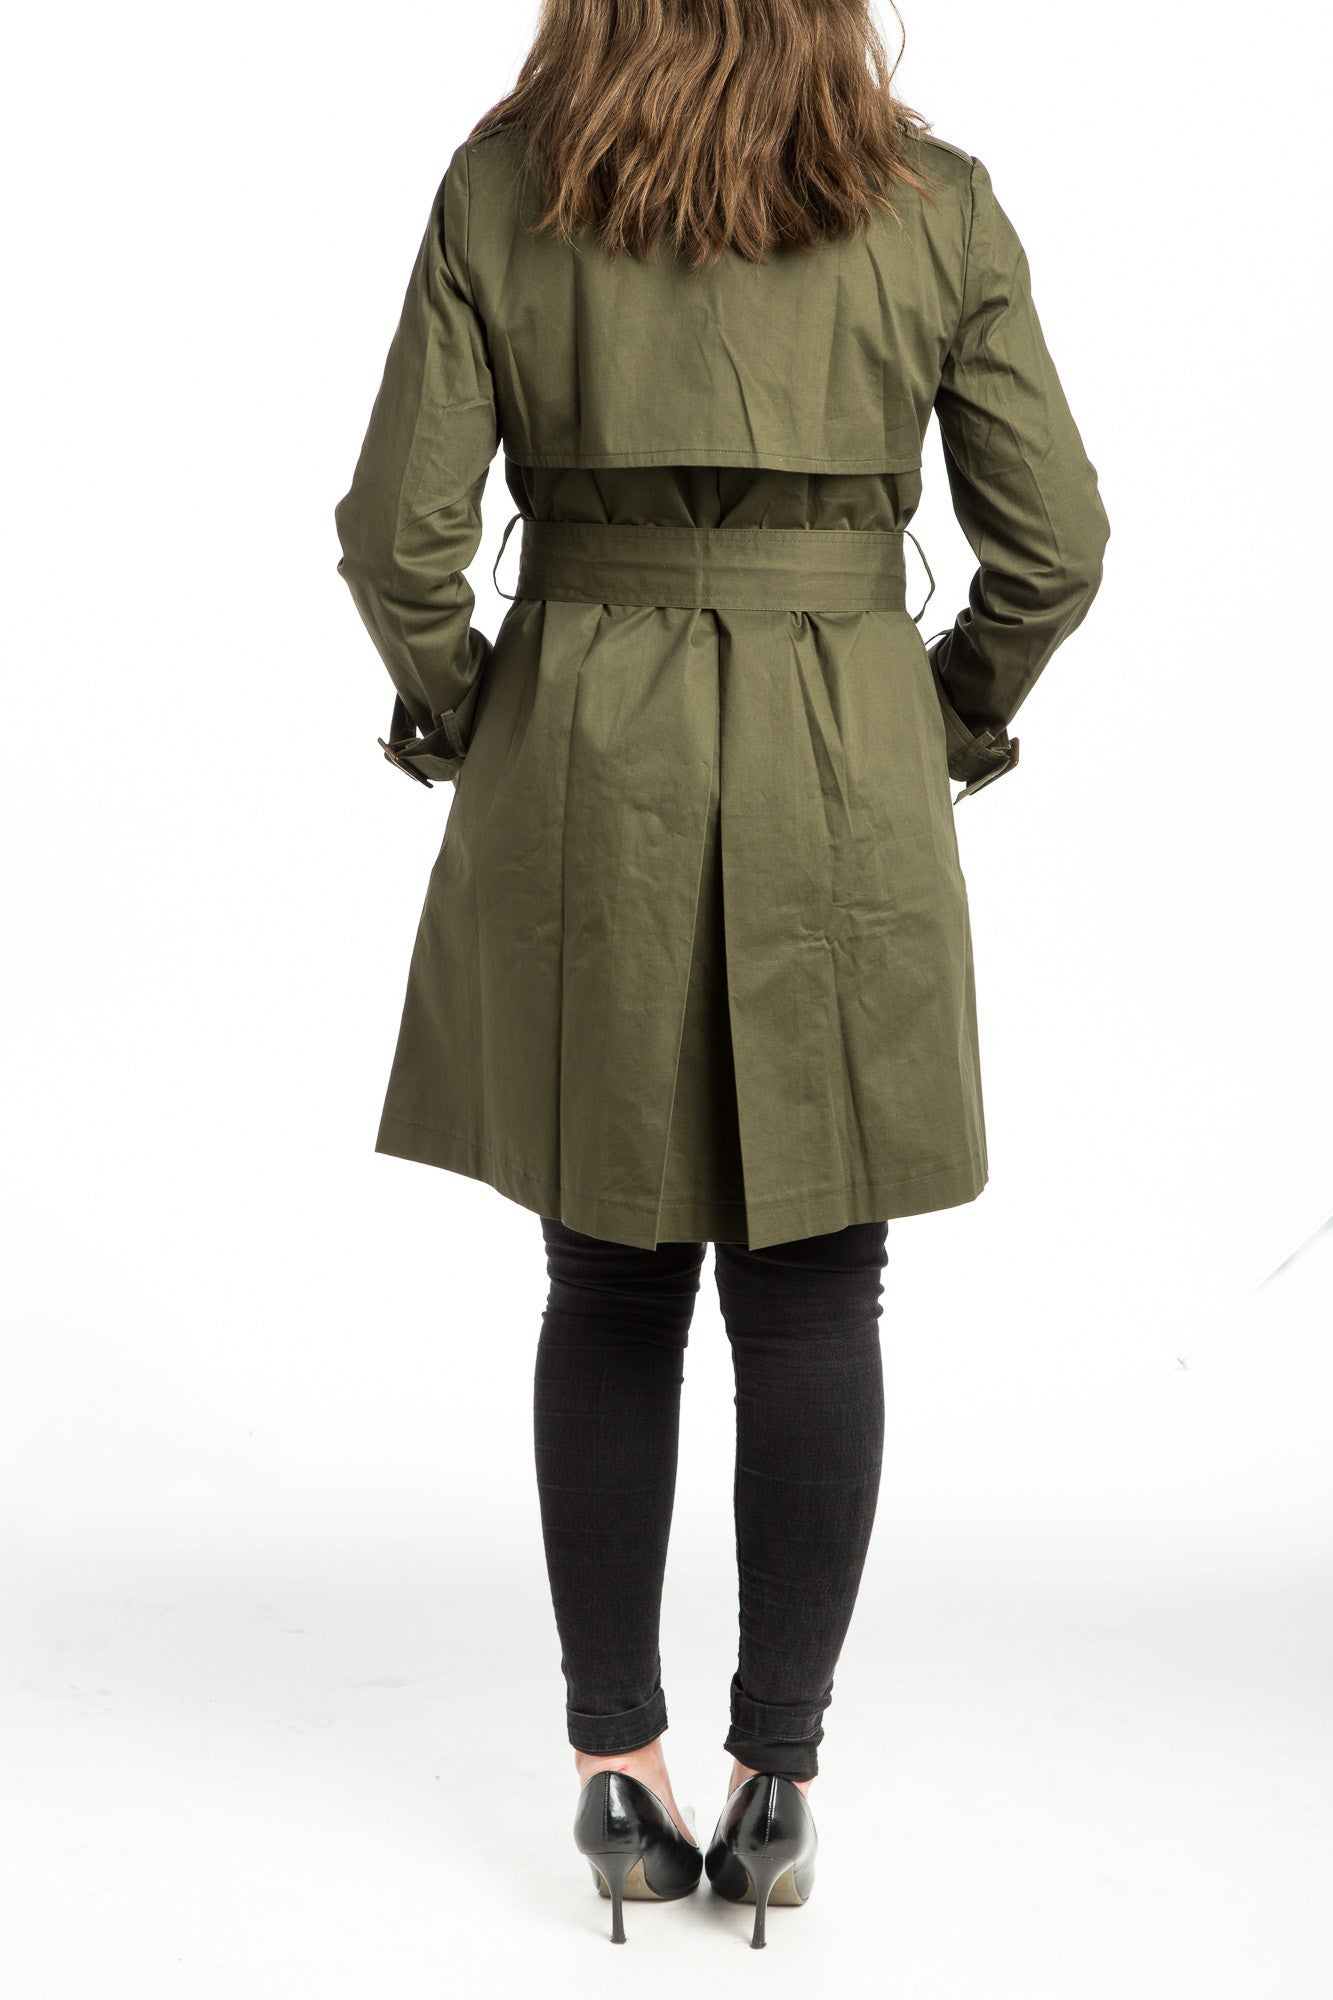 SHERA Trench Coat - 2 colors available - Mademoiselle Veste - 7